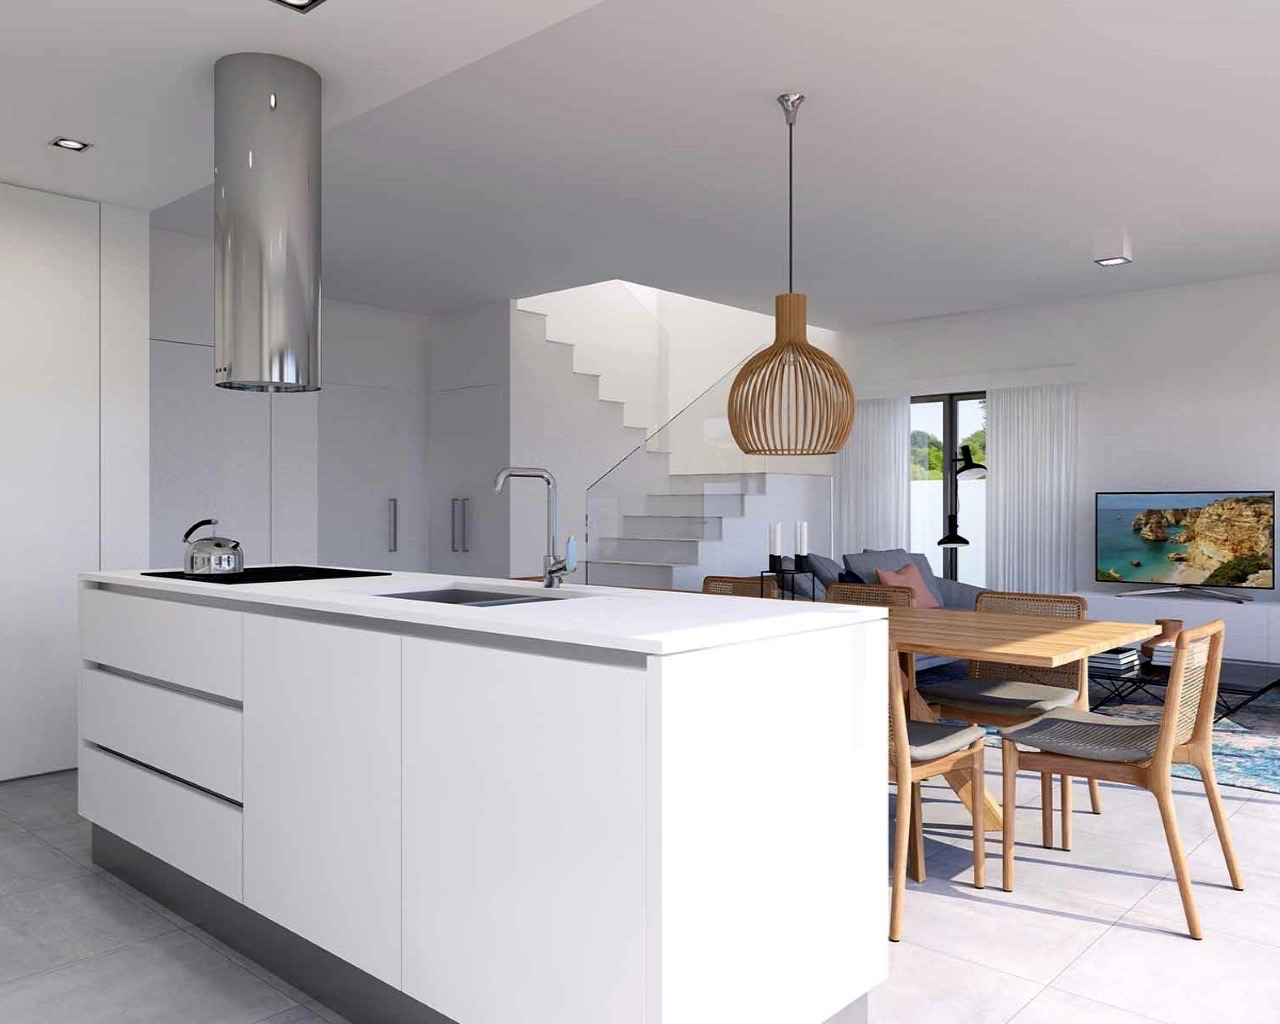 Portugal in pictures Modern 3 bedroom townhouse in Ferragudo  - Townhouses